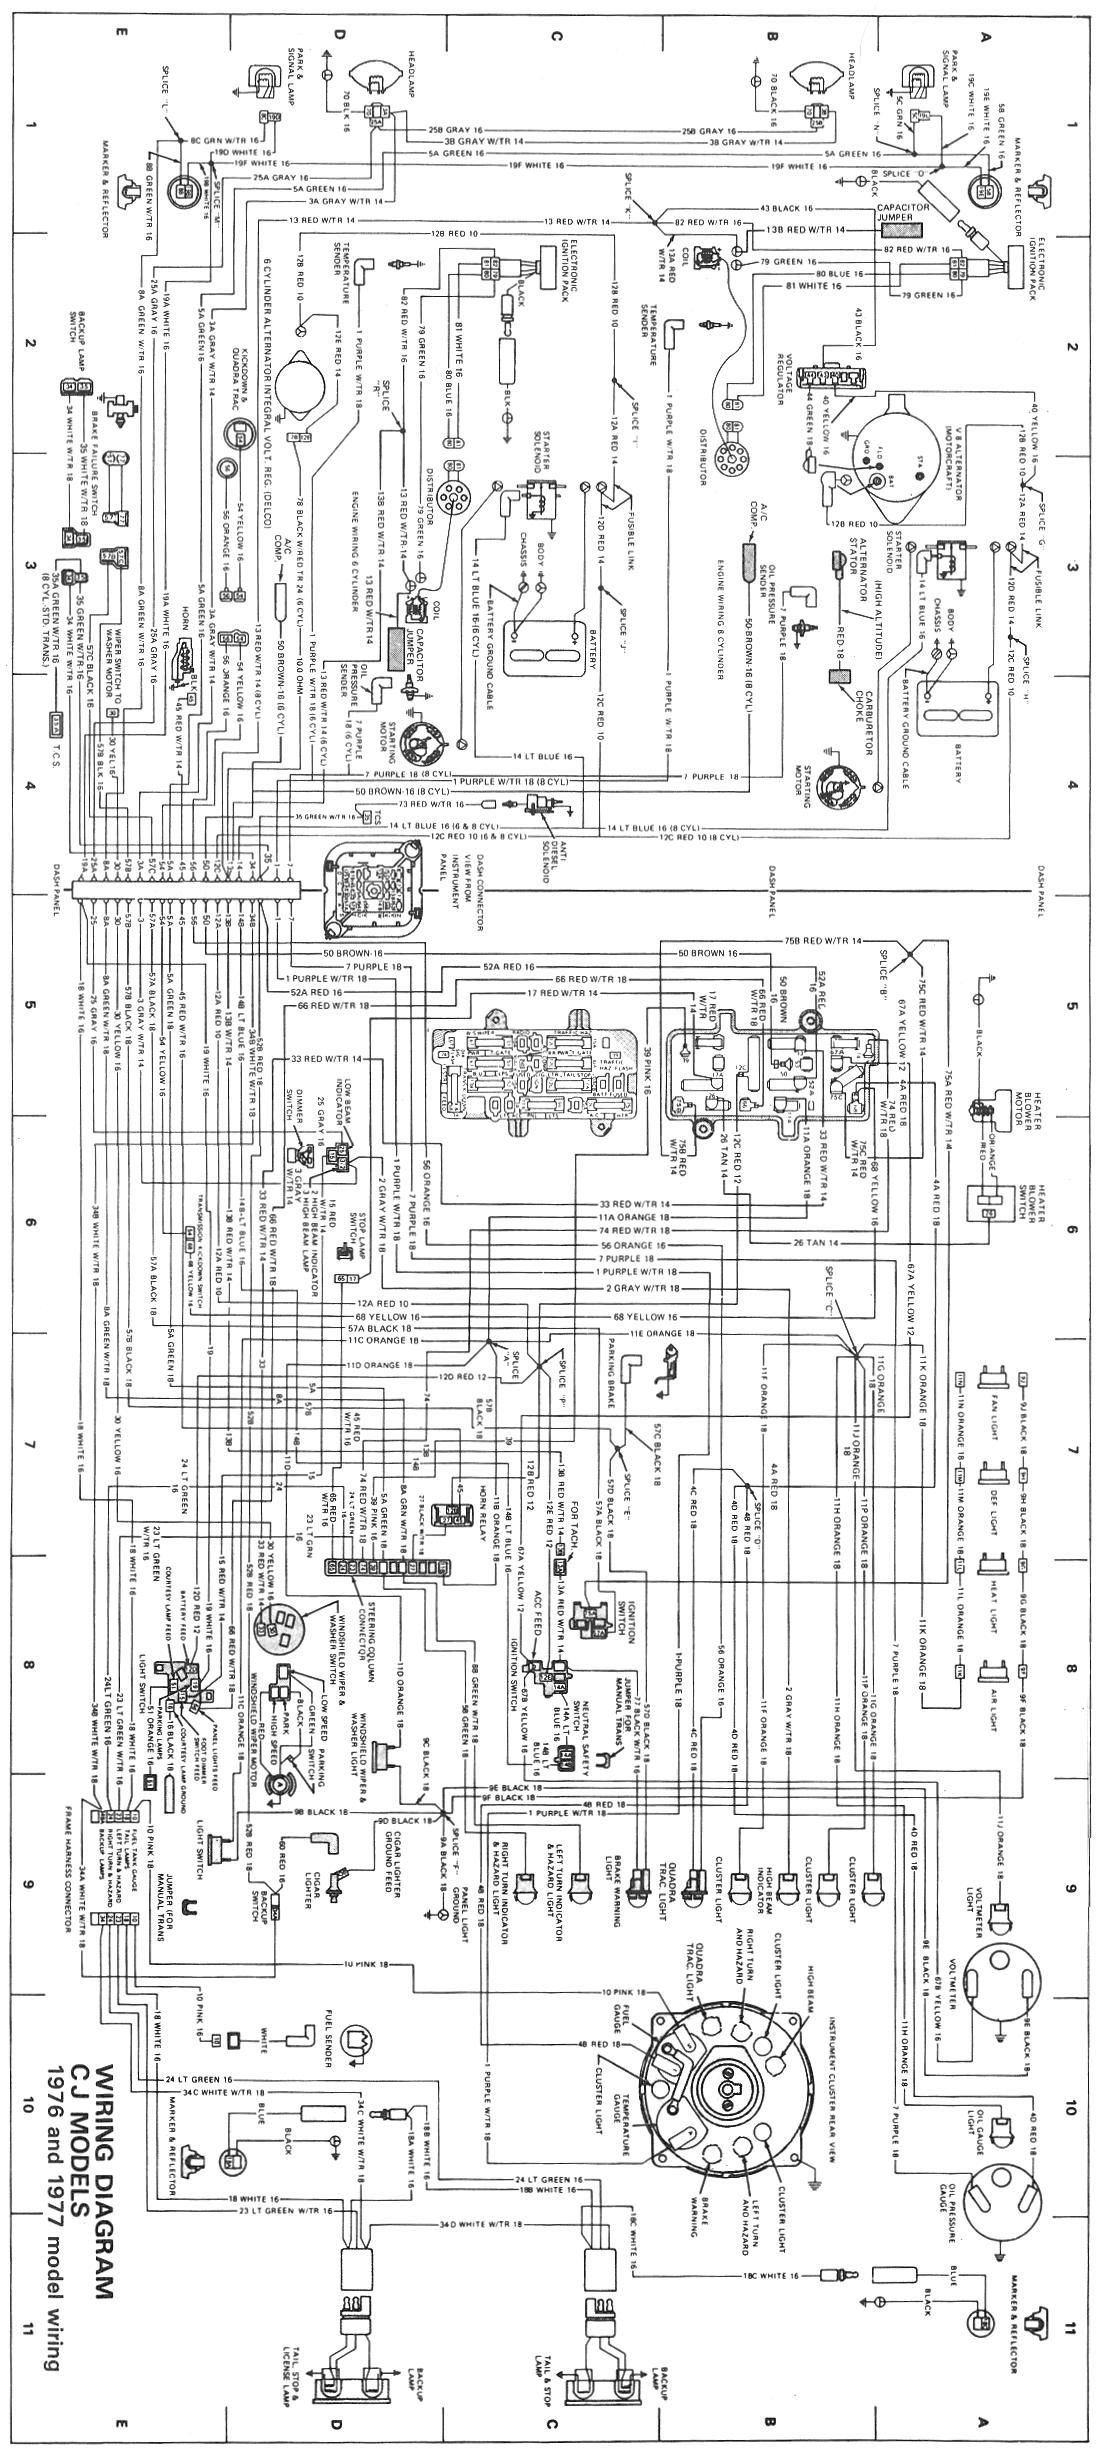 1981 cj7 wiring diagram 1981 cj7 heater diagram